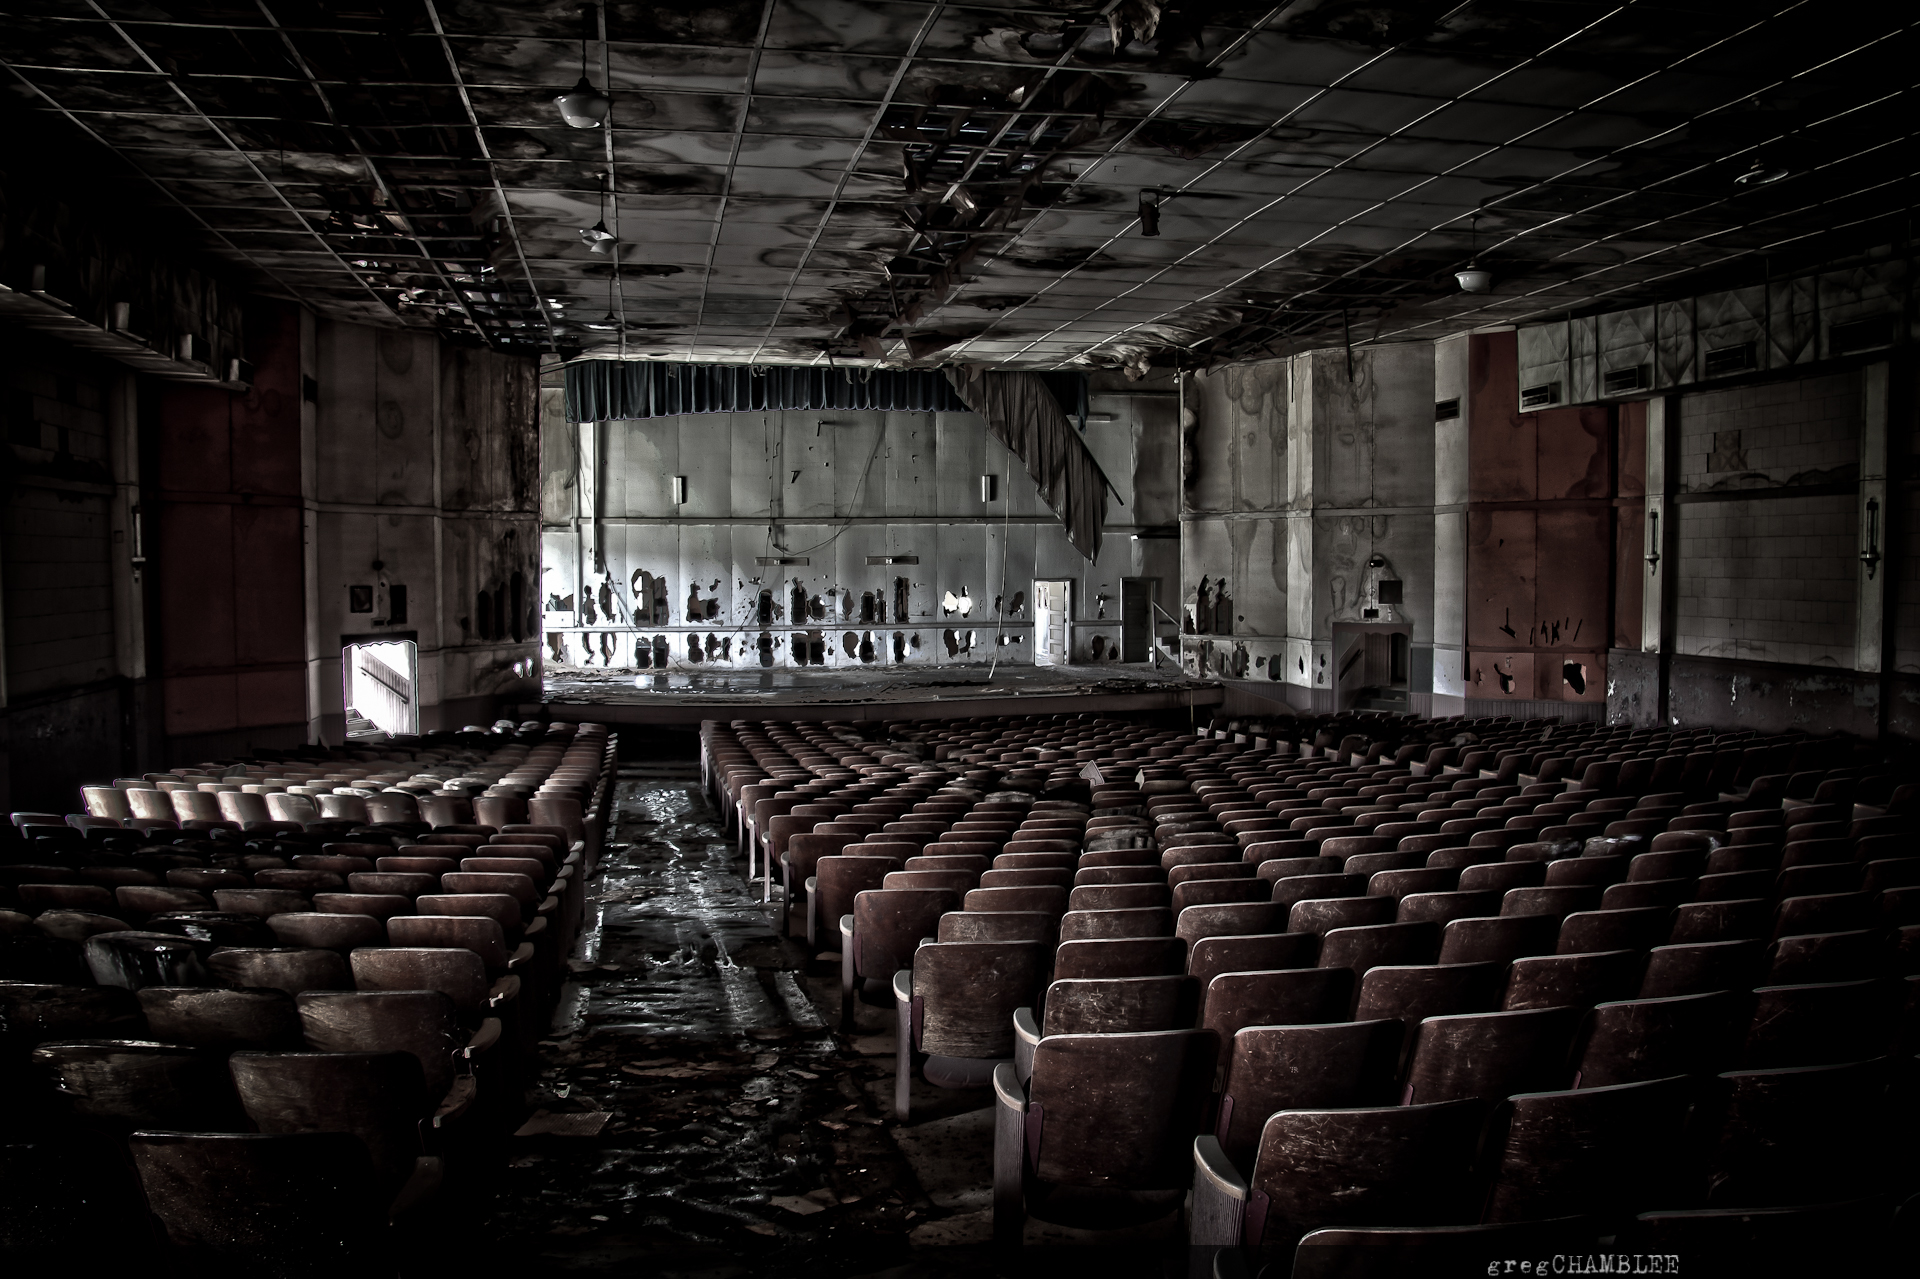 abandoned theater | greg chamblee photography